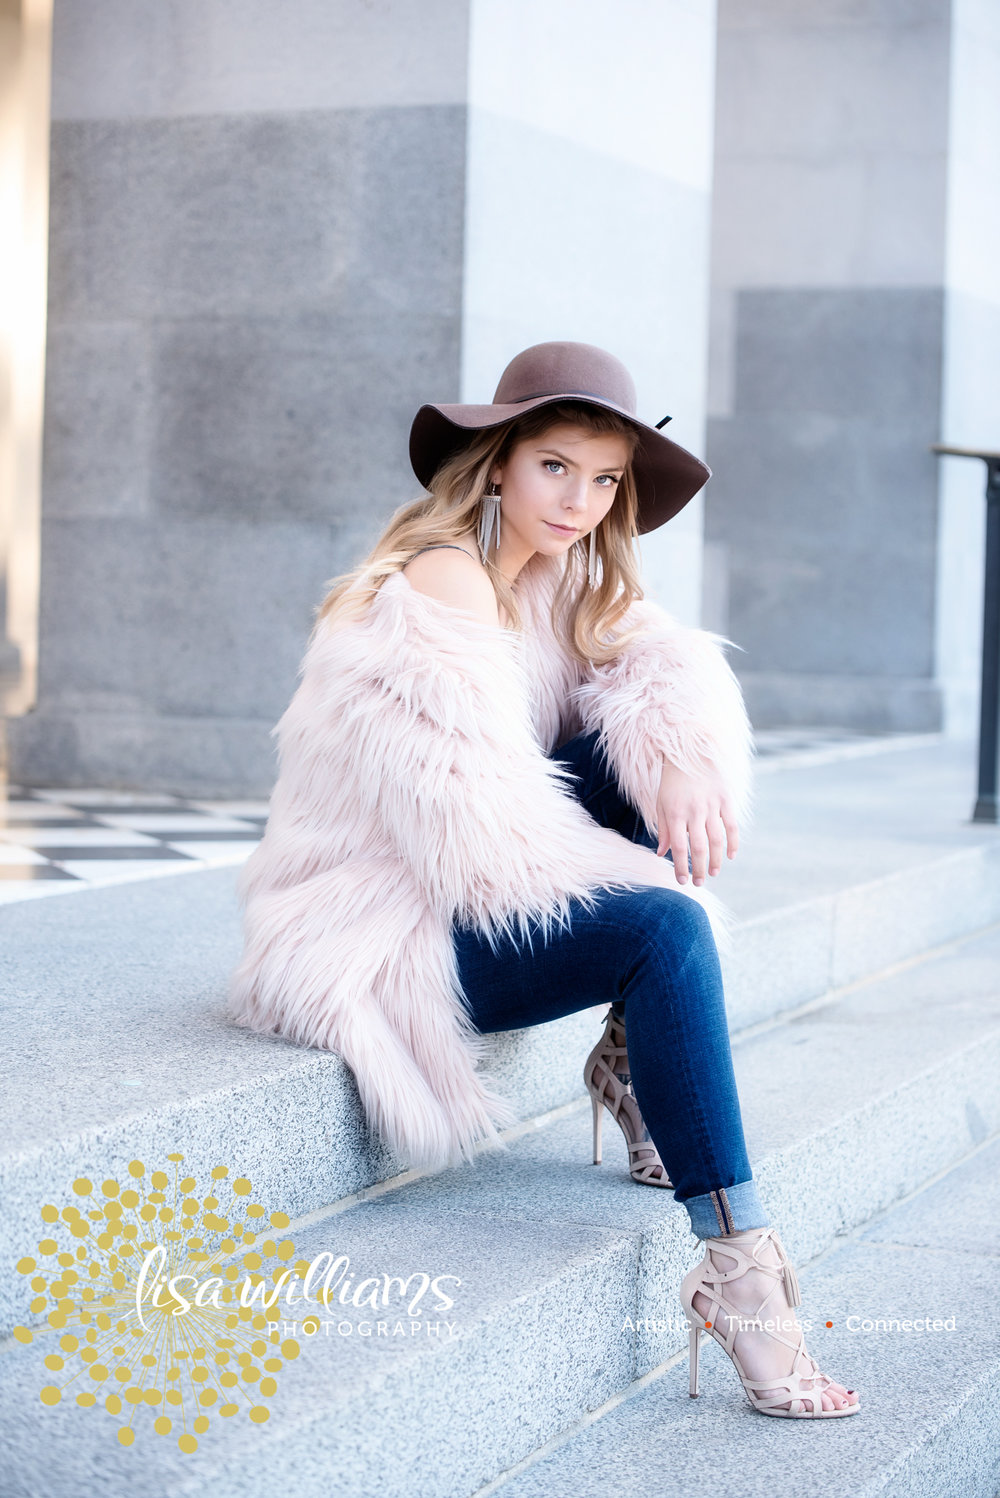 Magazine Shoot… - High Fashion was our theme this year and we shot at the State Capitol!